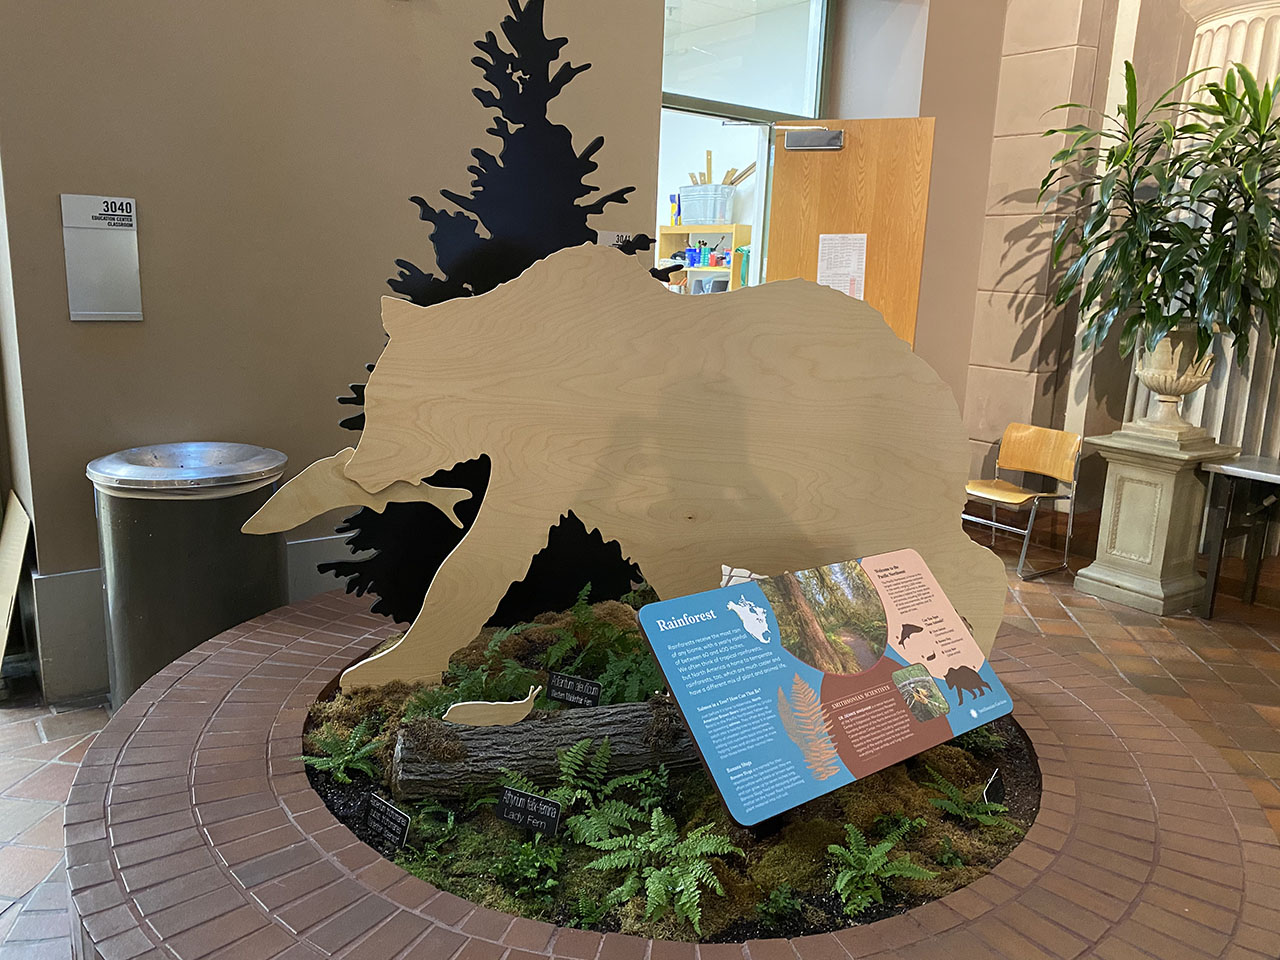 Temperate rainforest biome display showing a bear eating a salmon, the decomposition of which will nourish the soil, allowing plant life to thrive and ferns native to the Pacific Northwest.